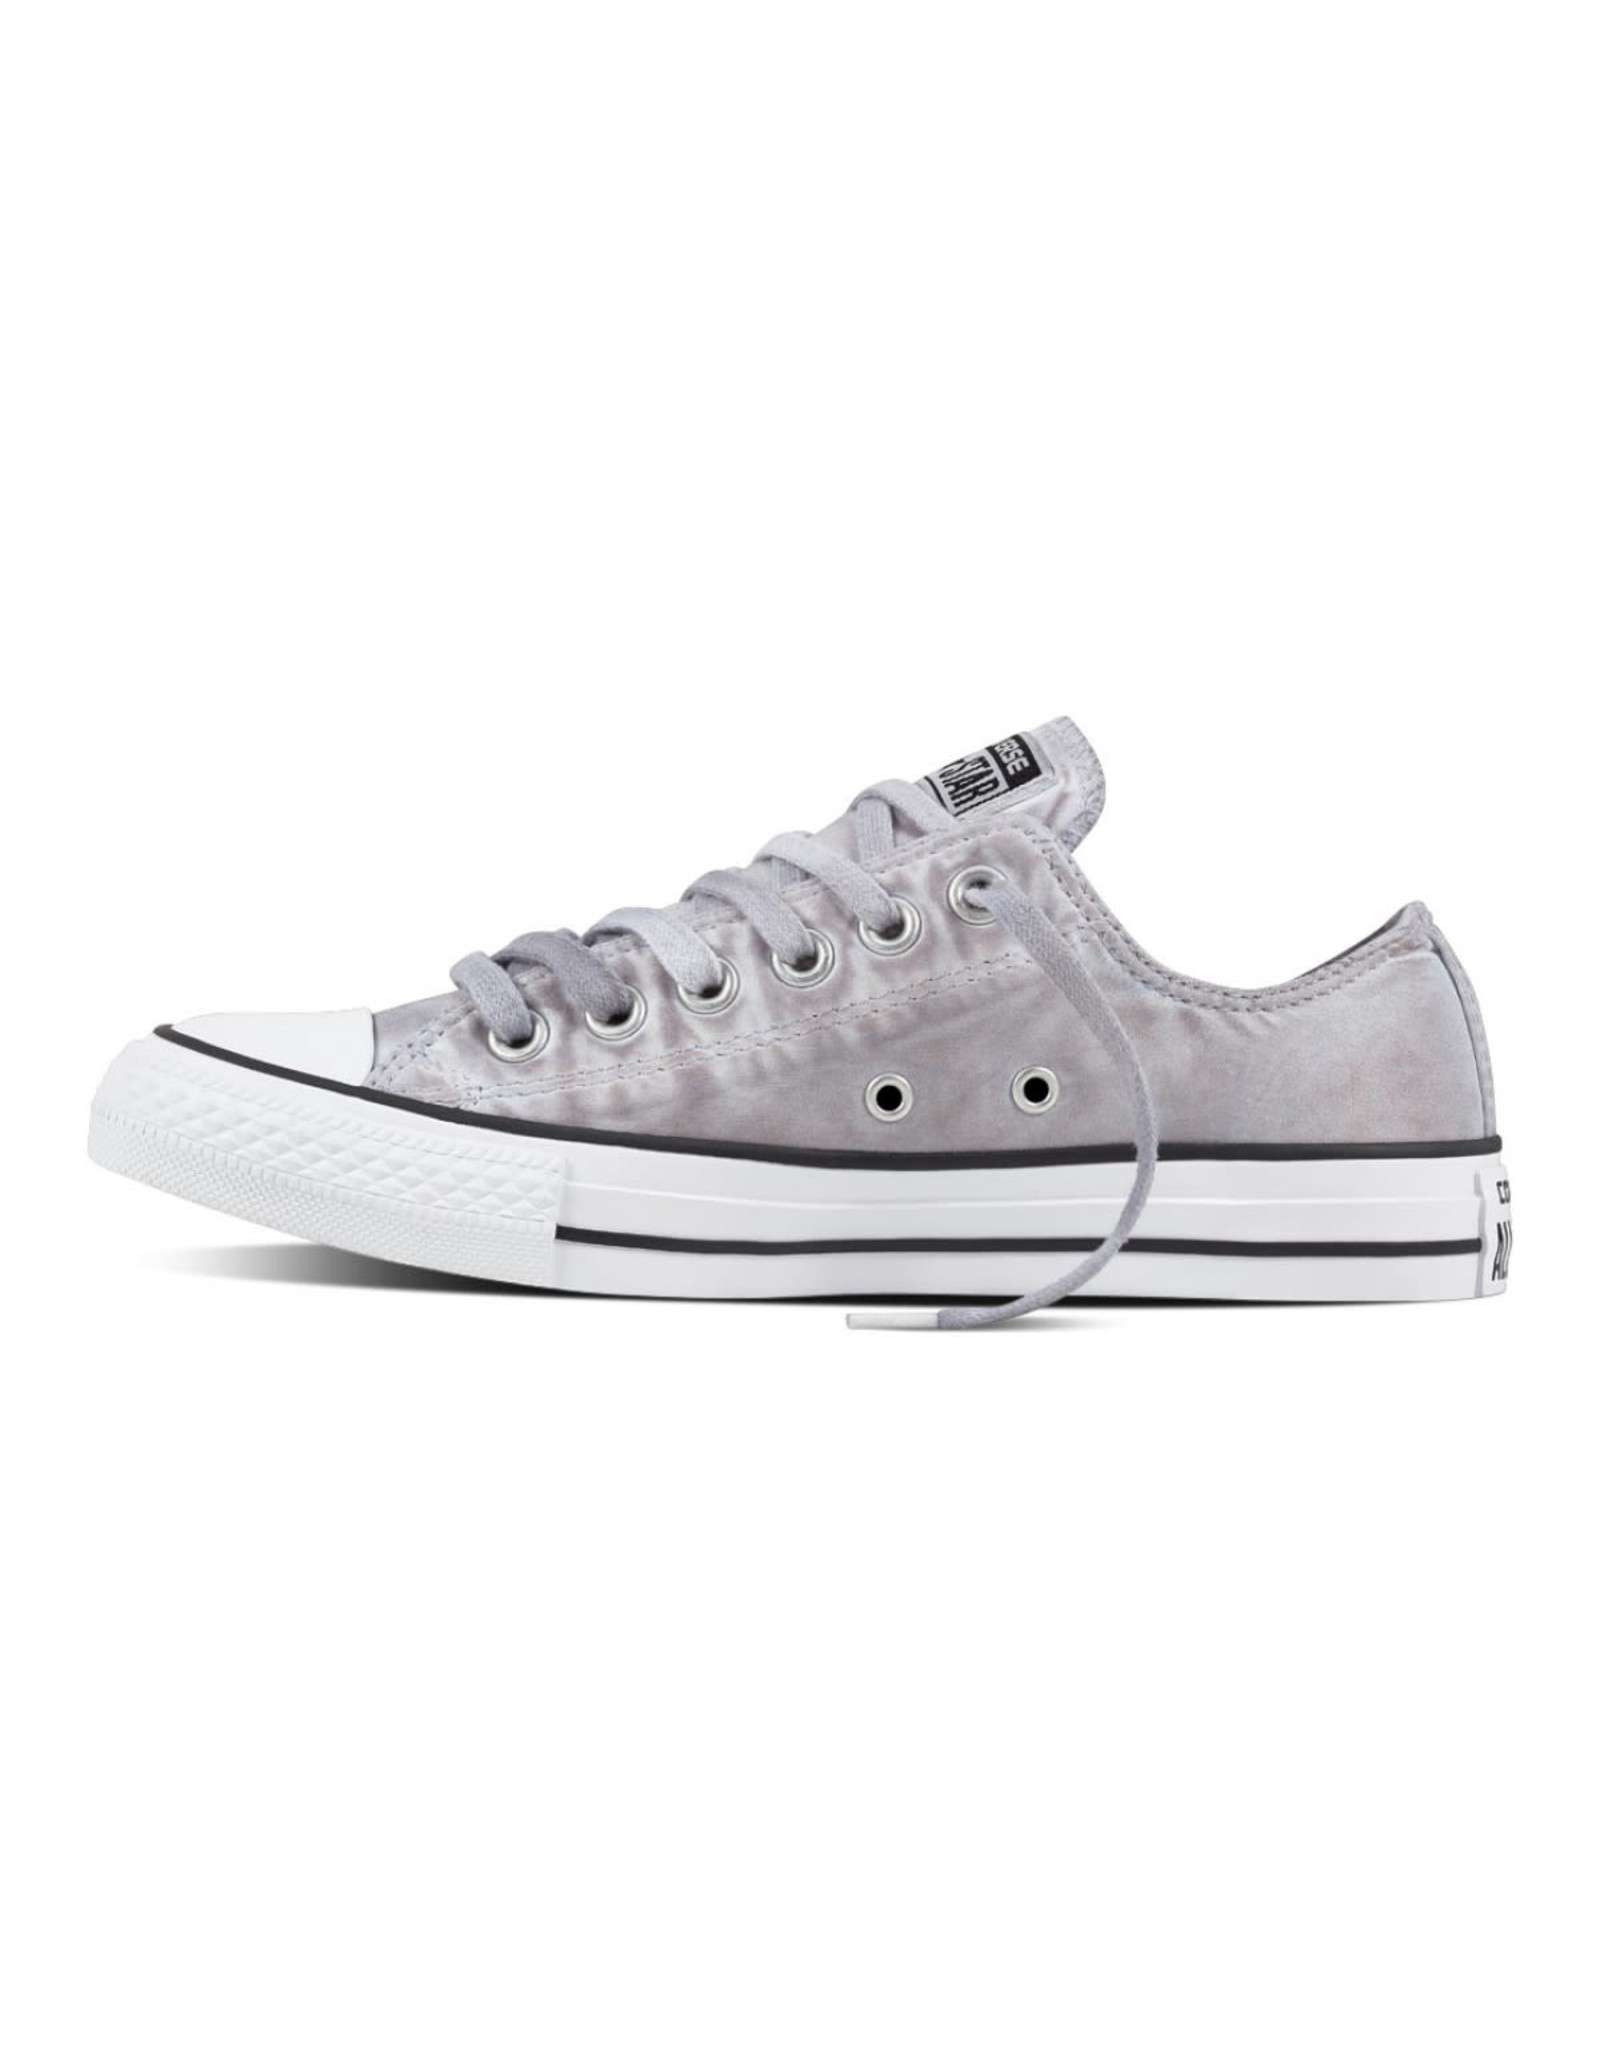 CONVERSE CHUCK TAYLOR OX DOLPHIN/BLACK/WHITE C11KED-155391C